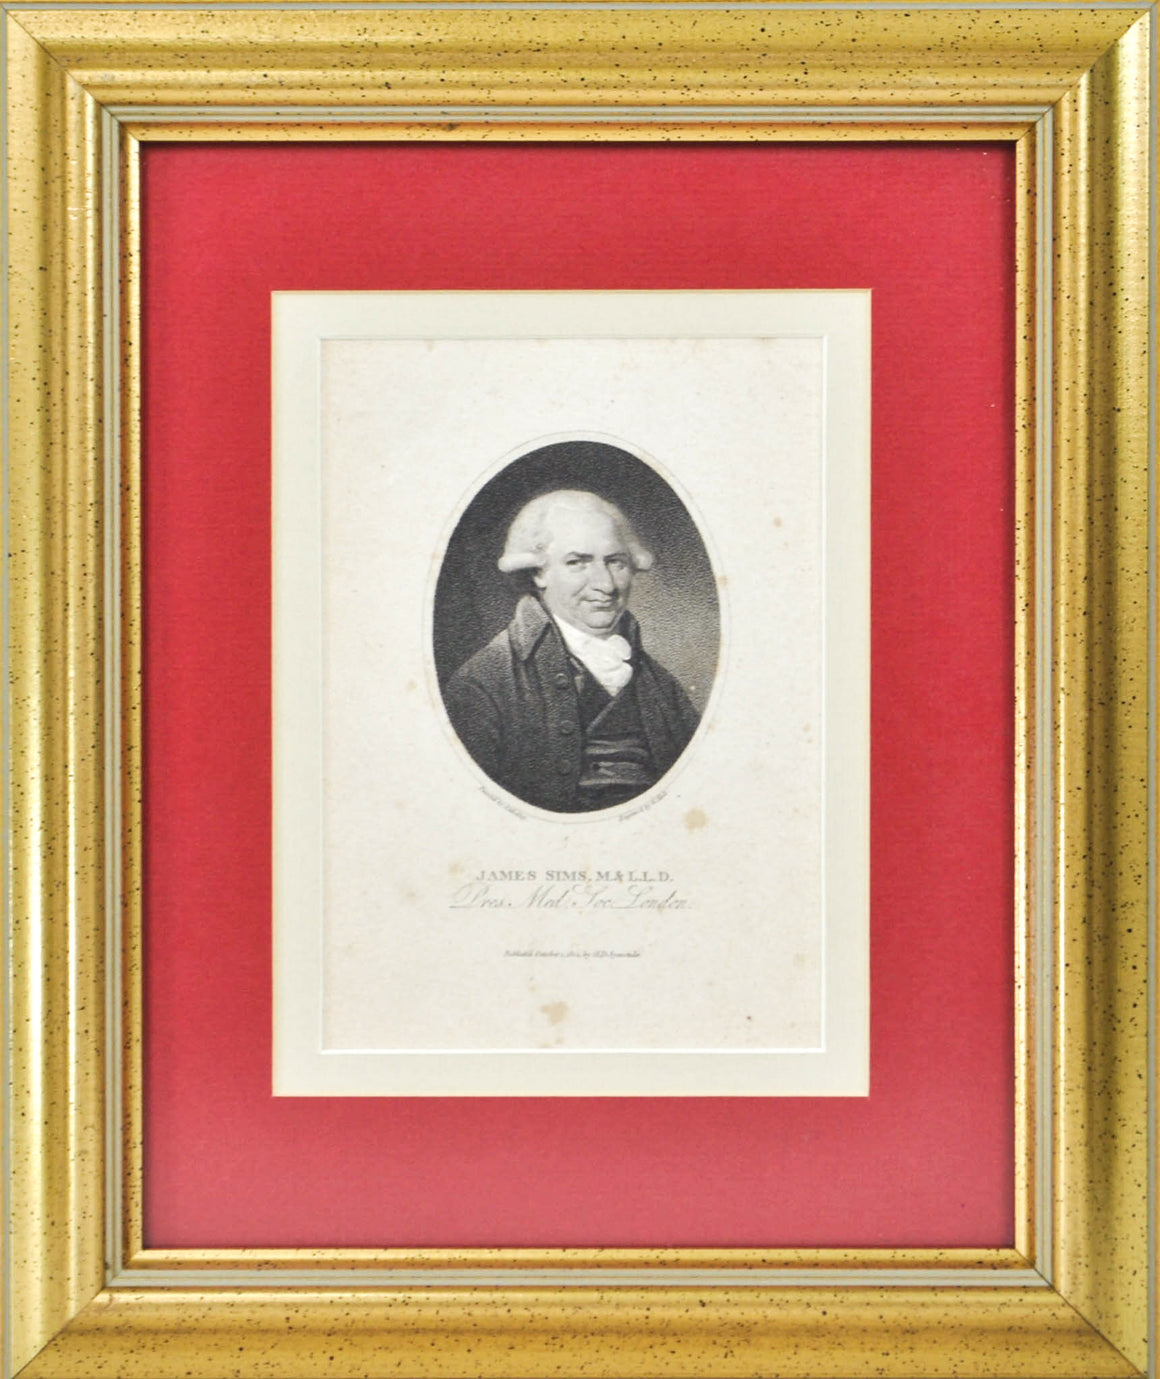 James Sims M.&L.L.D (1741-1820) Antique Medical Doctor Print 1804